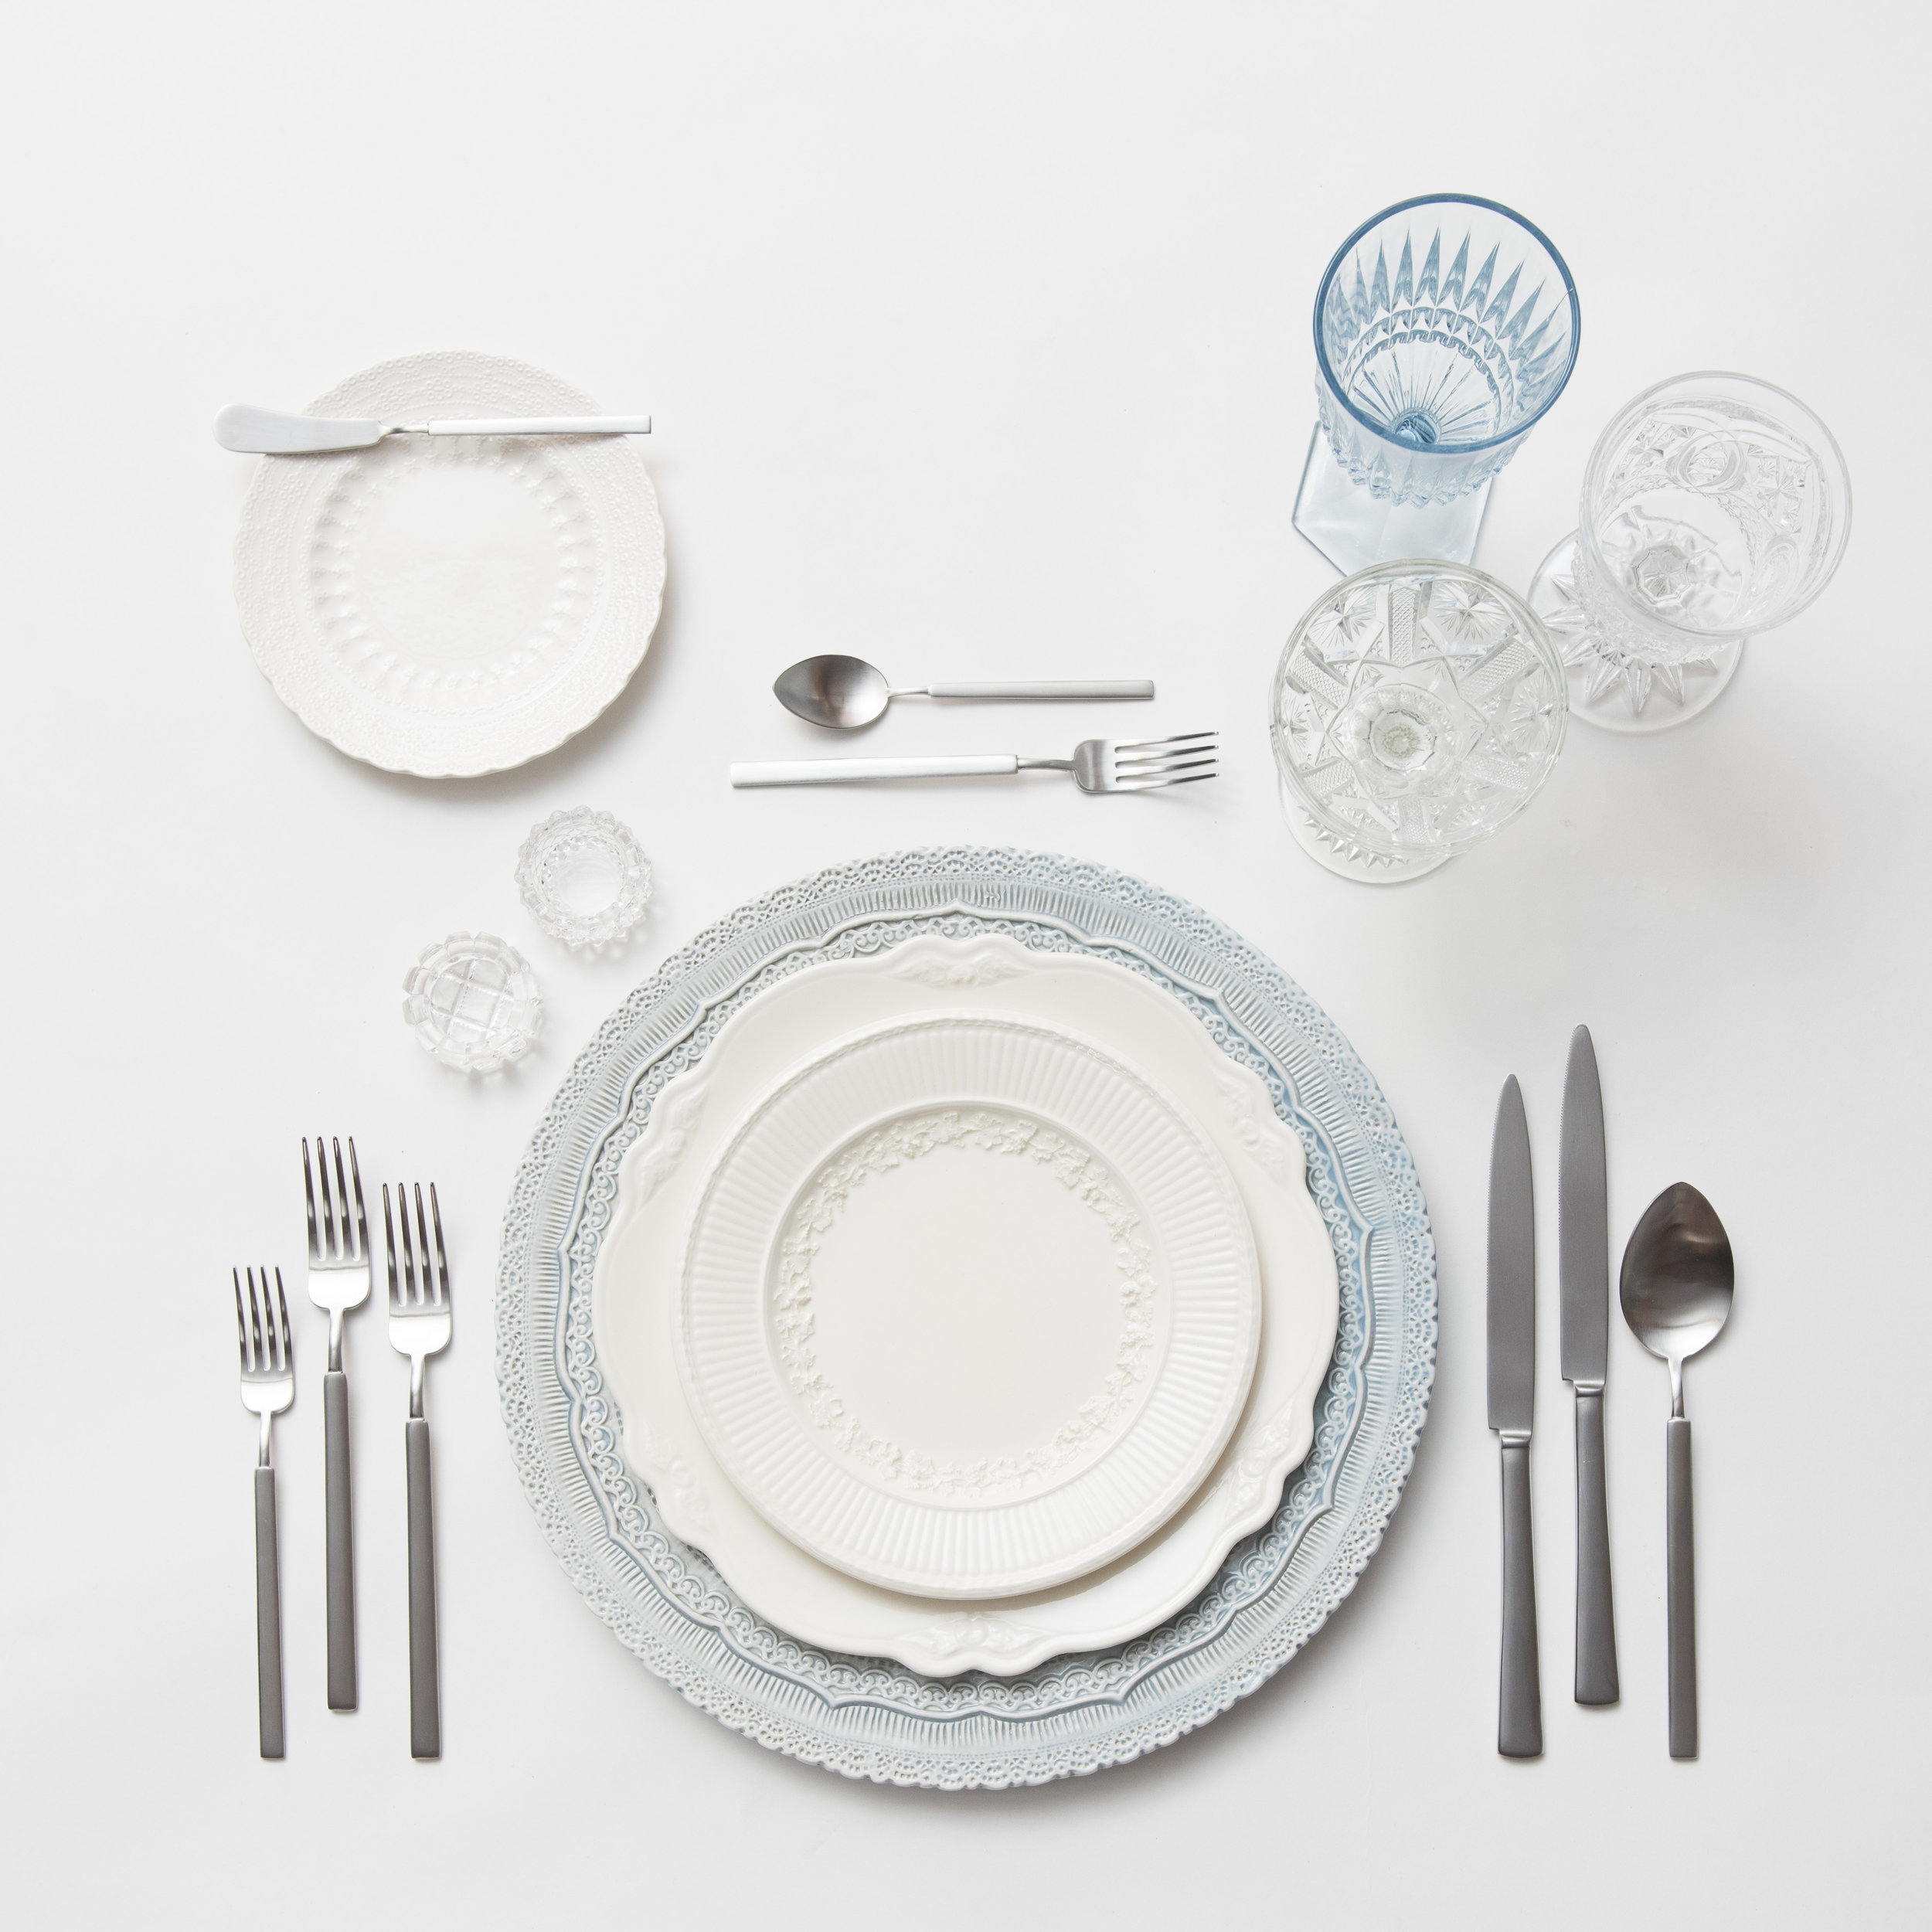 RENT: Lace Chargers in Dusty Blue + White Collection Vintage China + Axel Flatware in Matte Silver + Light Blue Vintage Goblets + Early American Pressed Glass Goblets + Vintage Champagne Coupes + Antique Crystal Salt Cellars